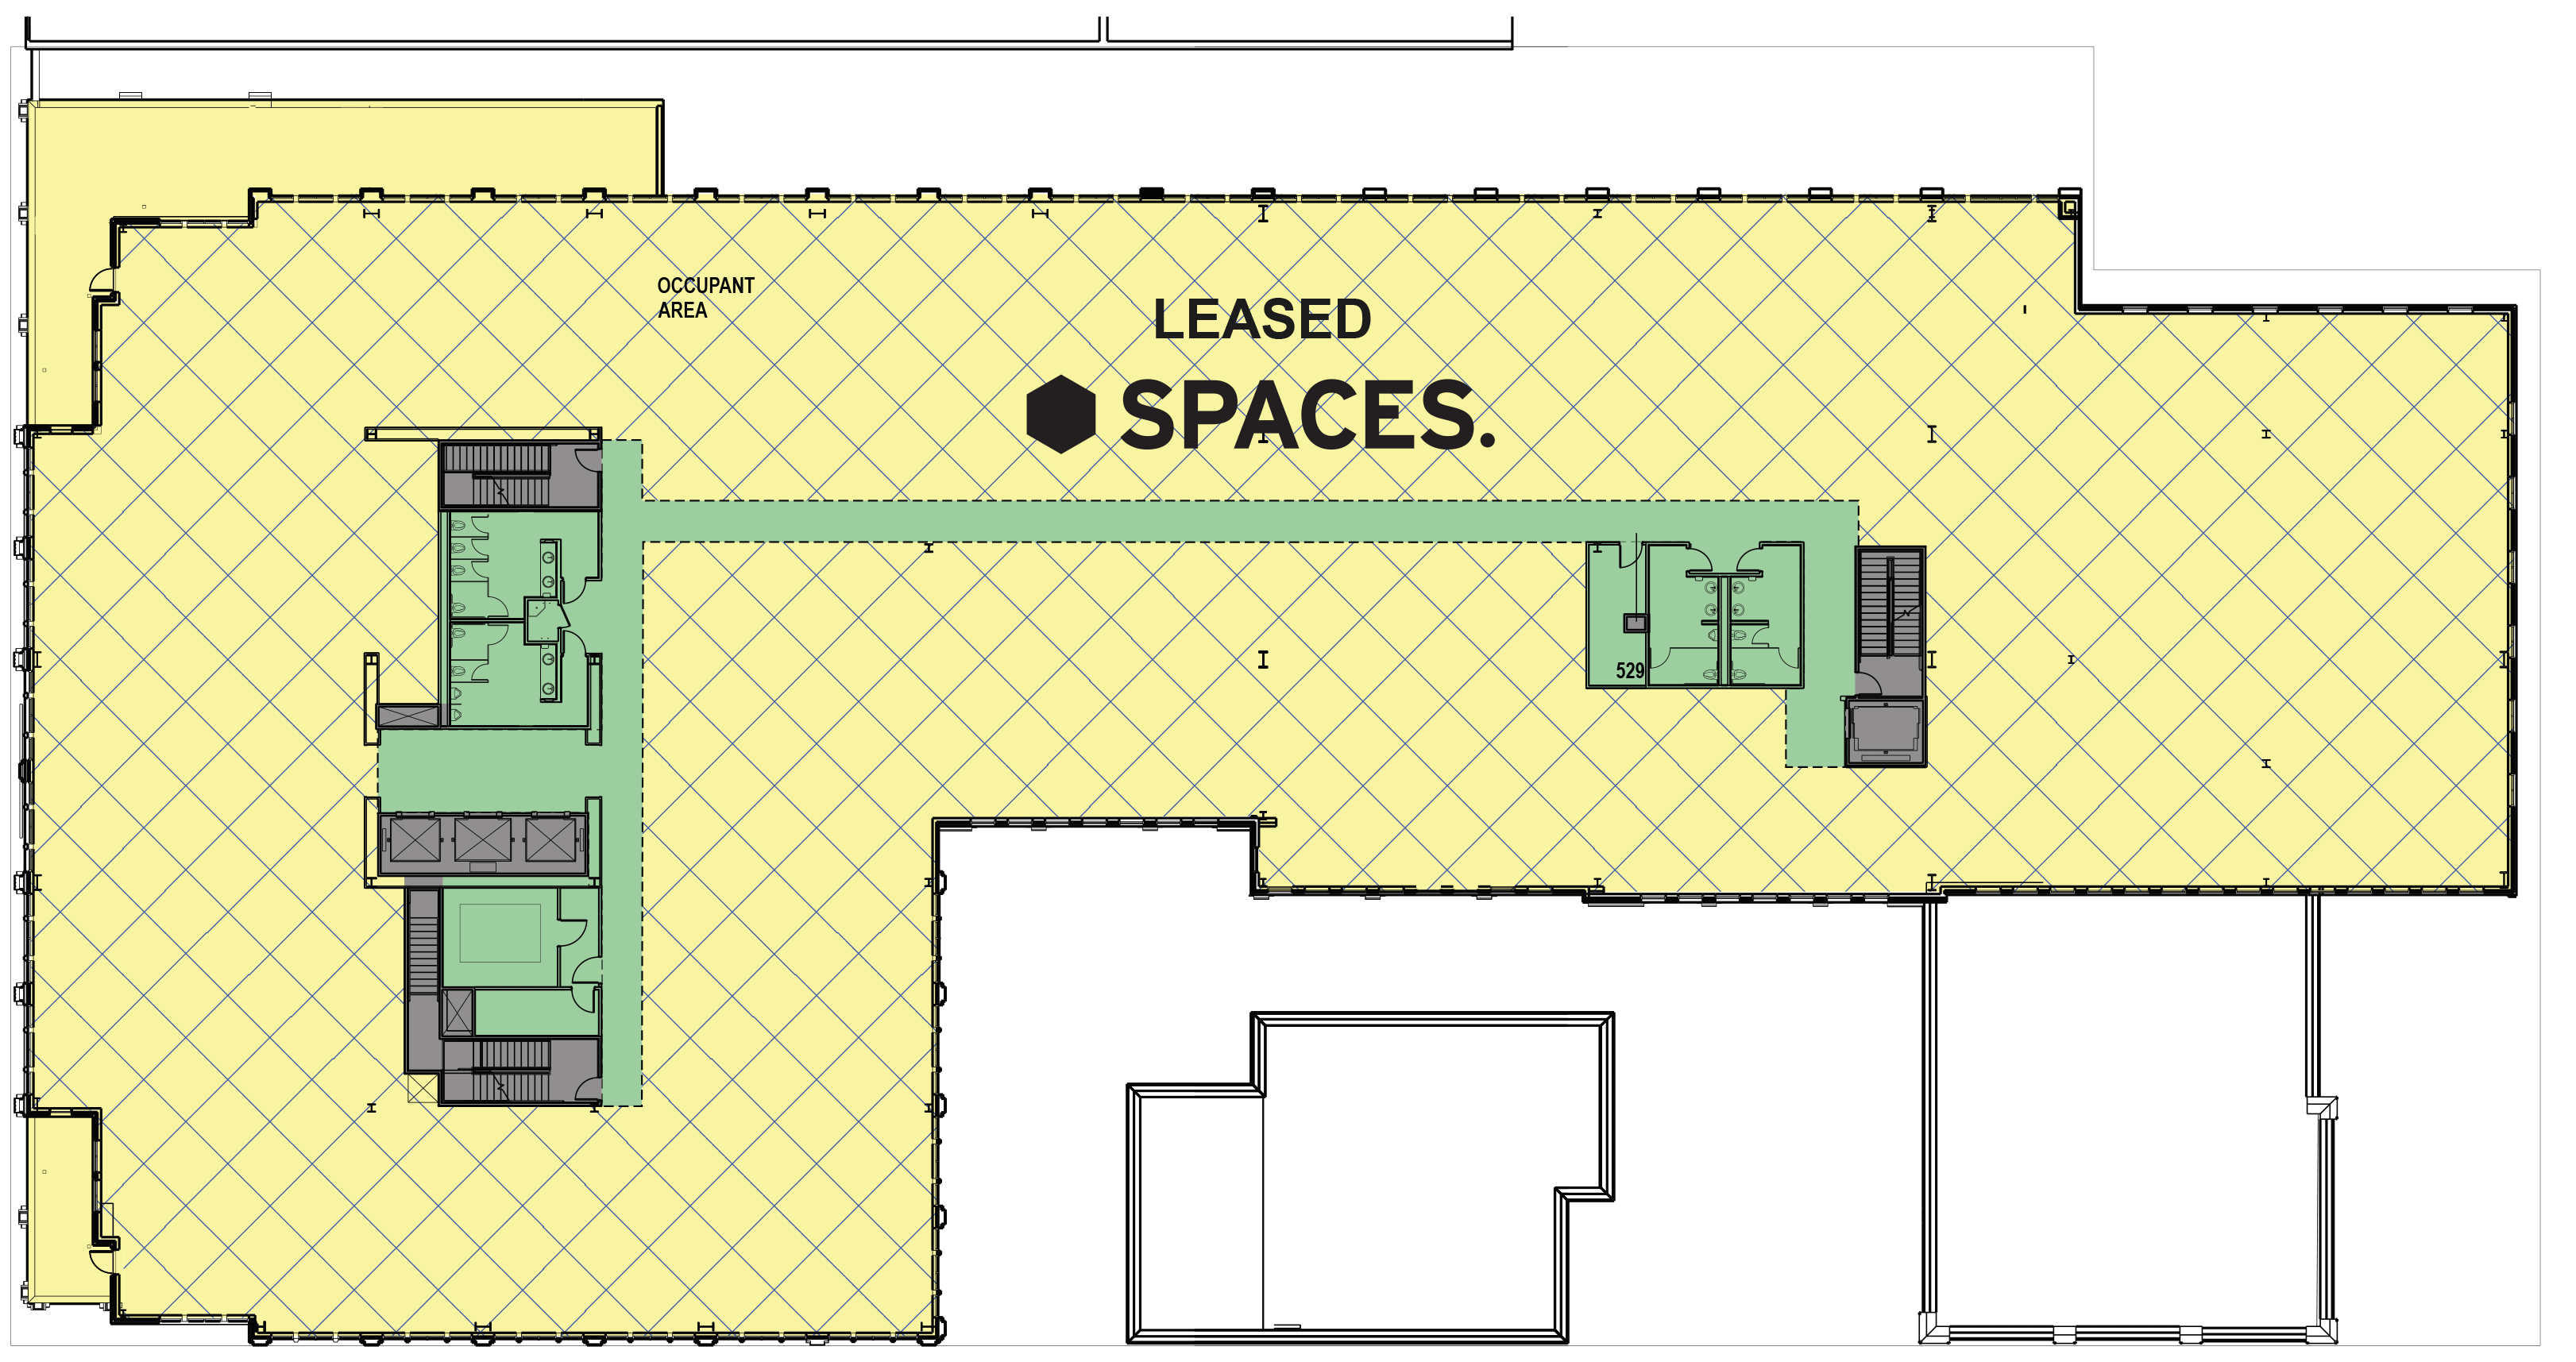 Playhouse Plaza - Floor 2 Availabilities